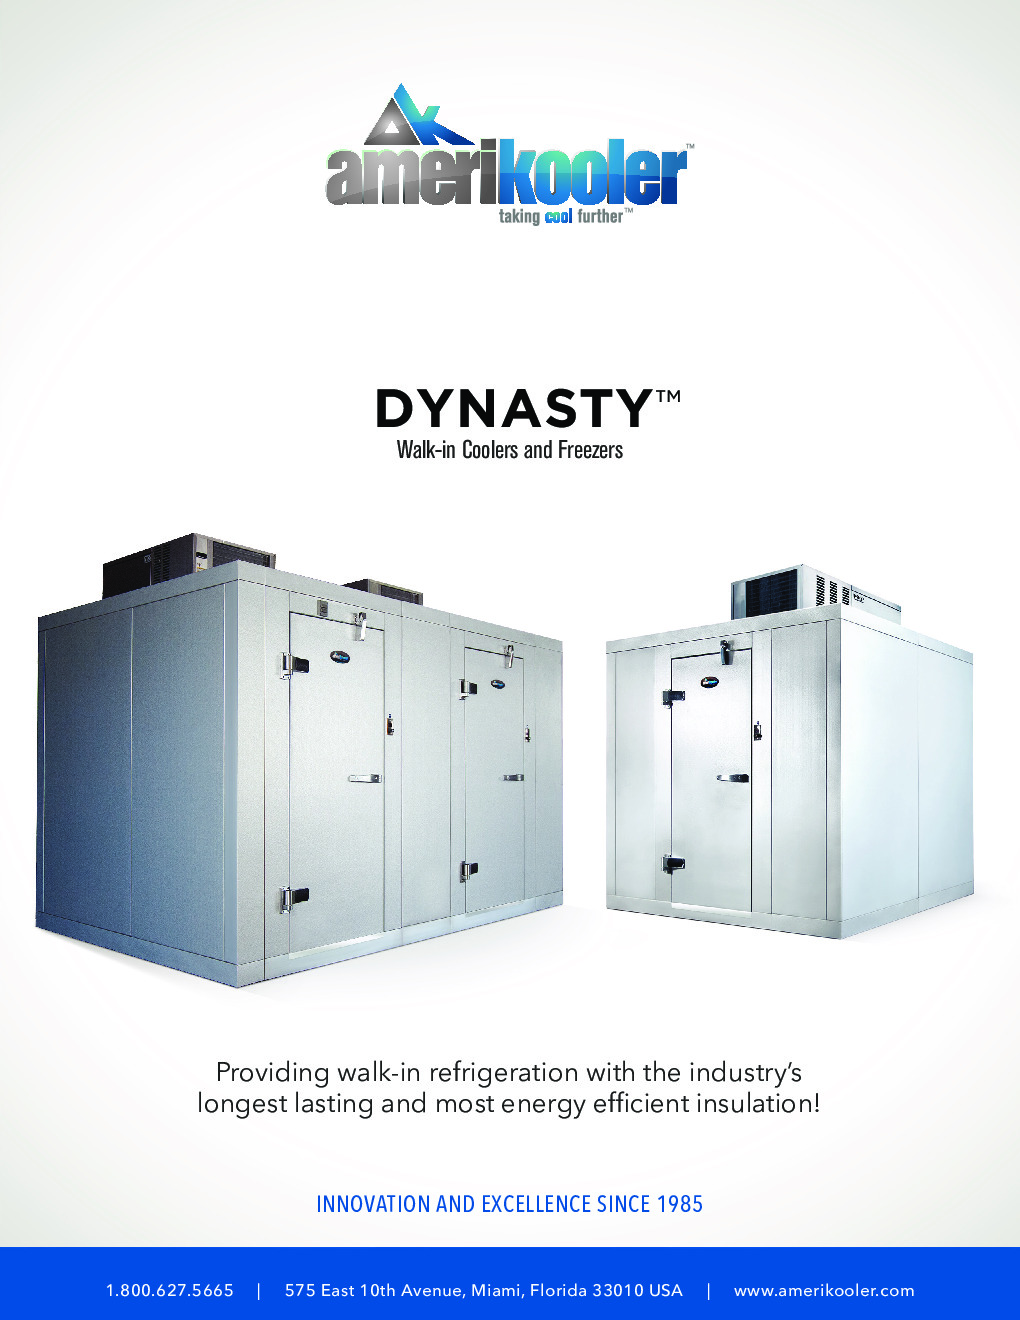 AmeriKooler DW081677N-4/12-SC 8' X 16' Walk-In Cooler, 12' L Cooler without Floor and 4' L Freezer, Self Contained